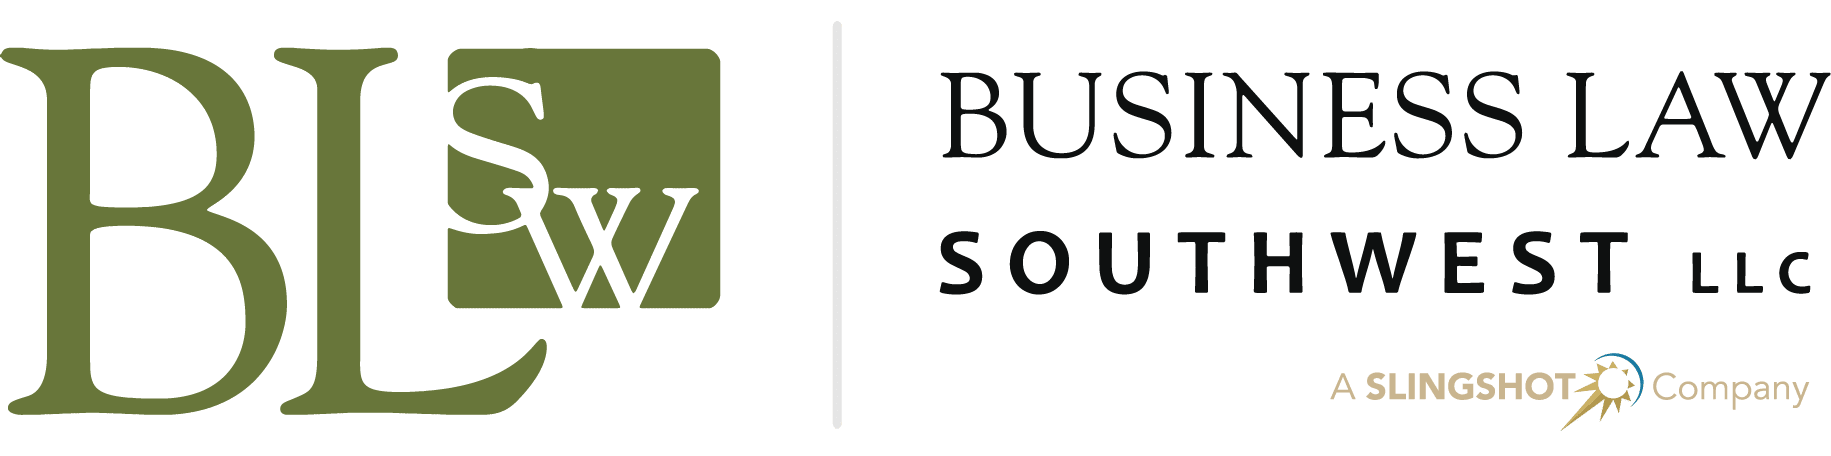 Business Law Southwest, LLC (BLSW)